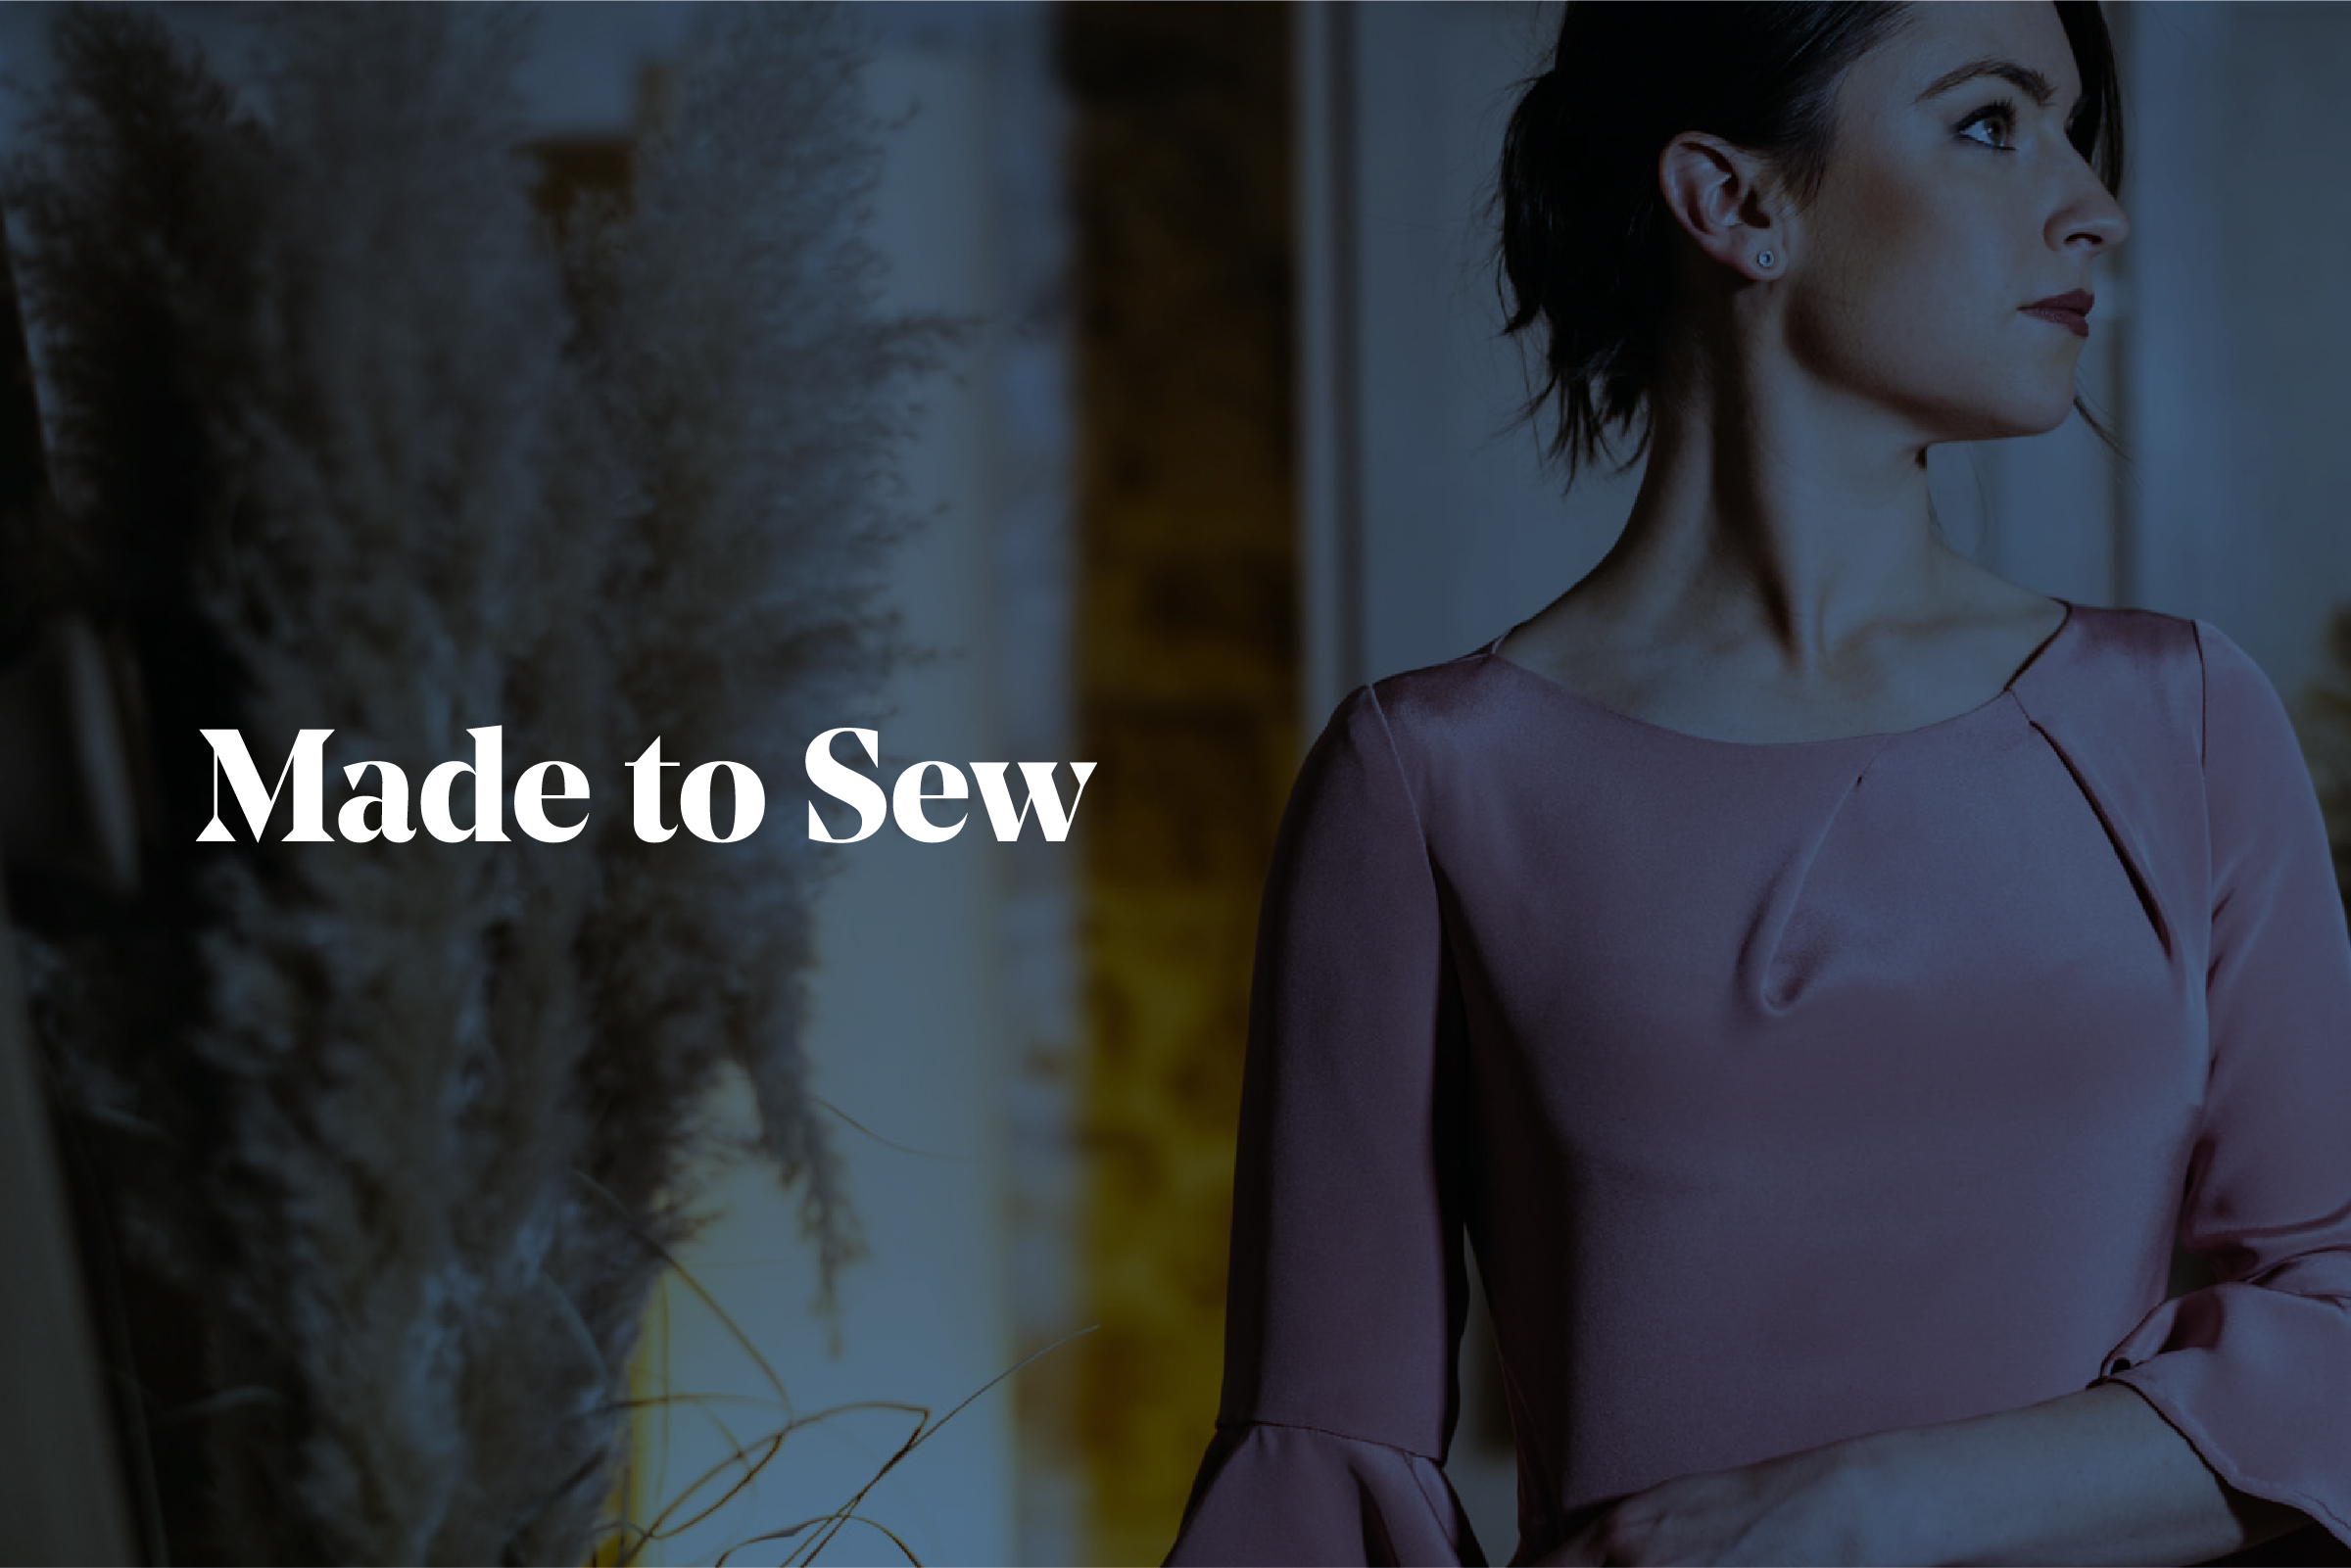 Example of branding design for Made to Sew